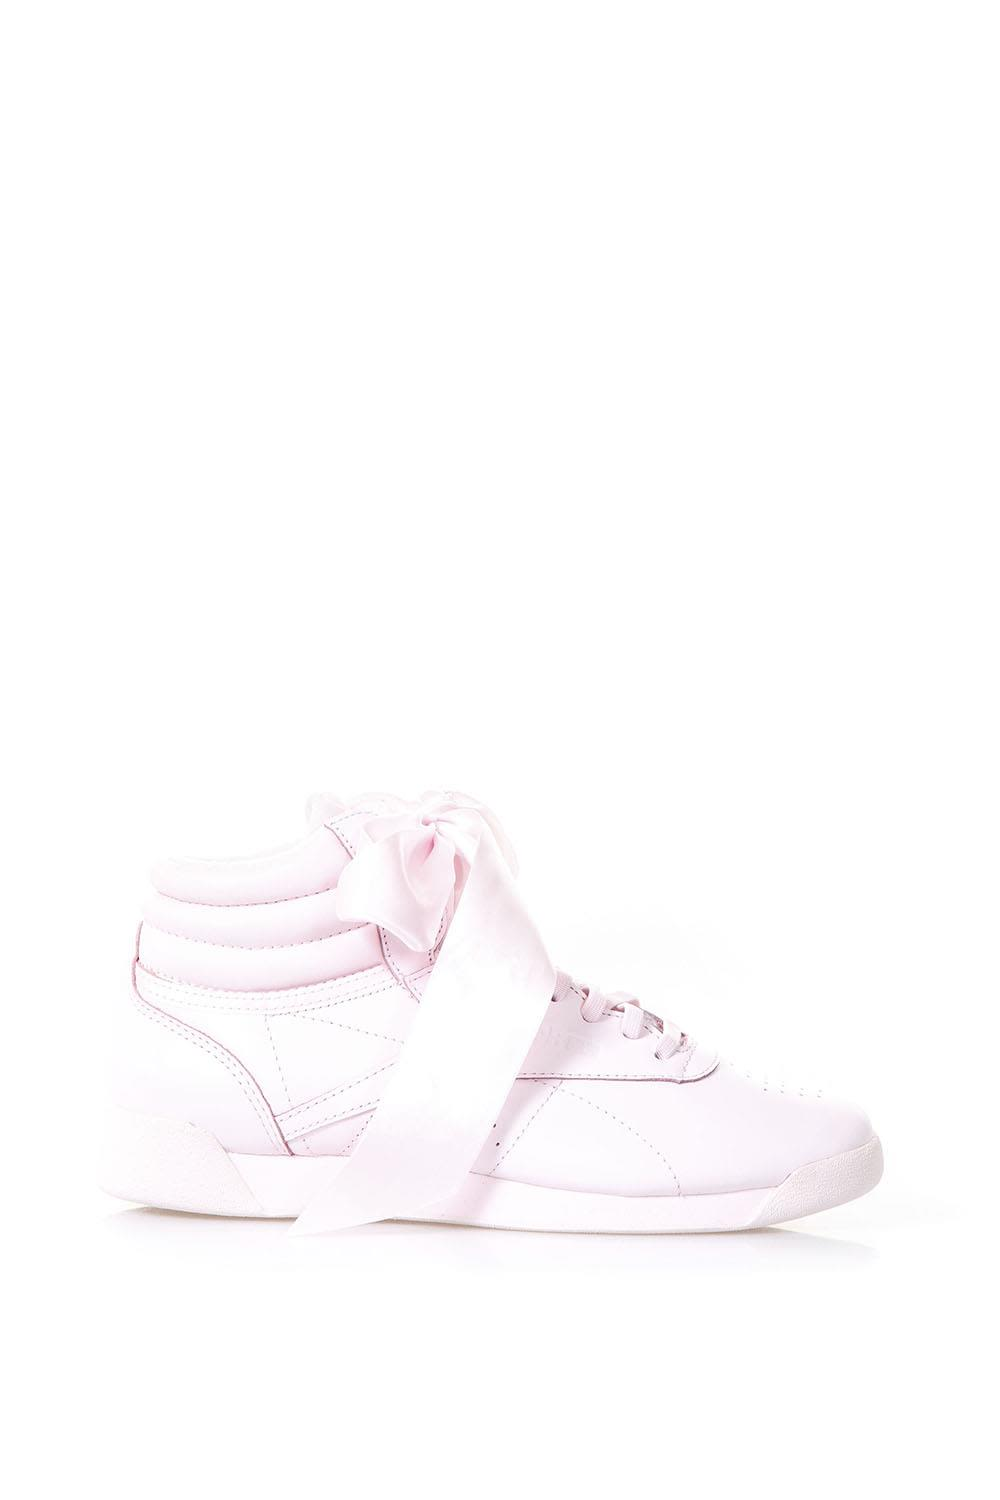 Reebok Pink Leather Sneakers With Ribbon